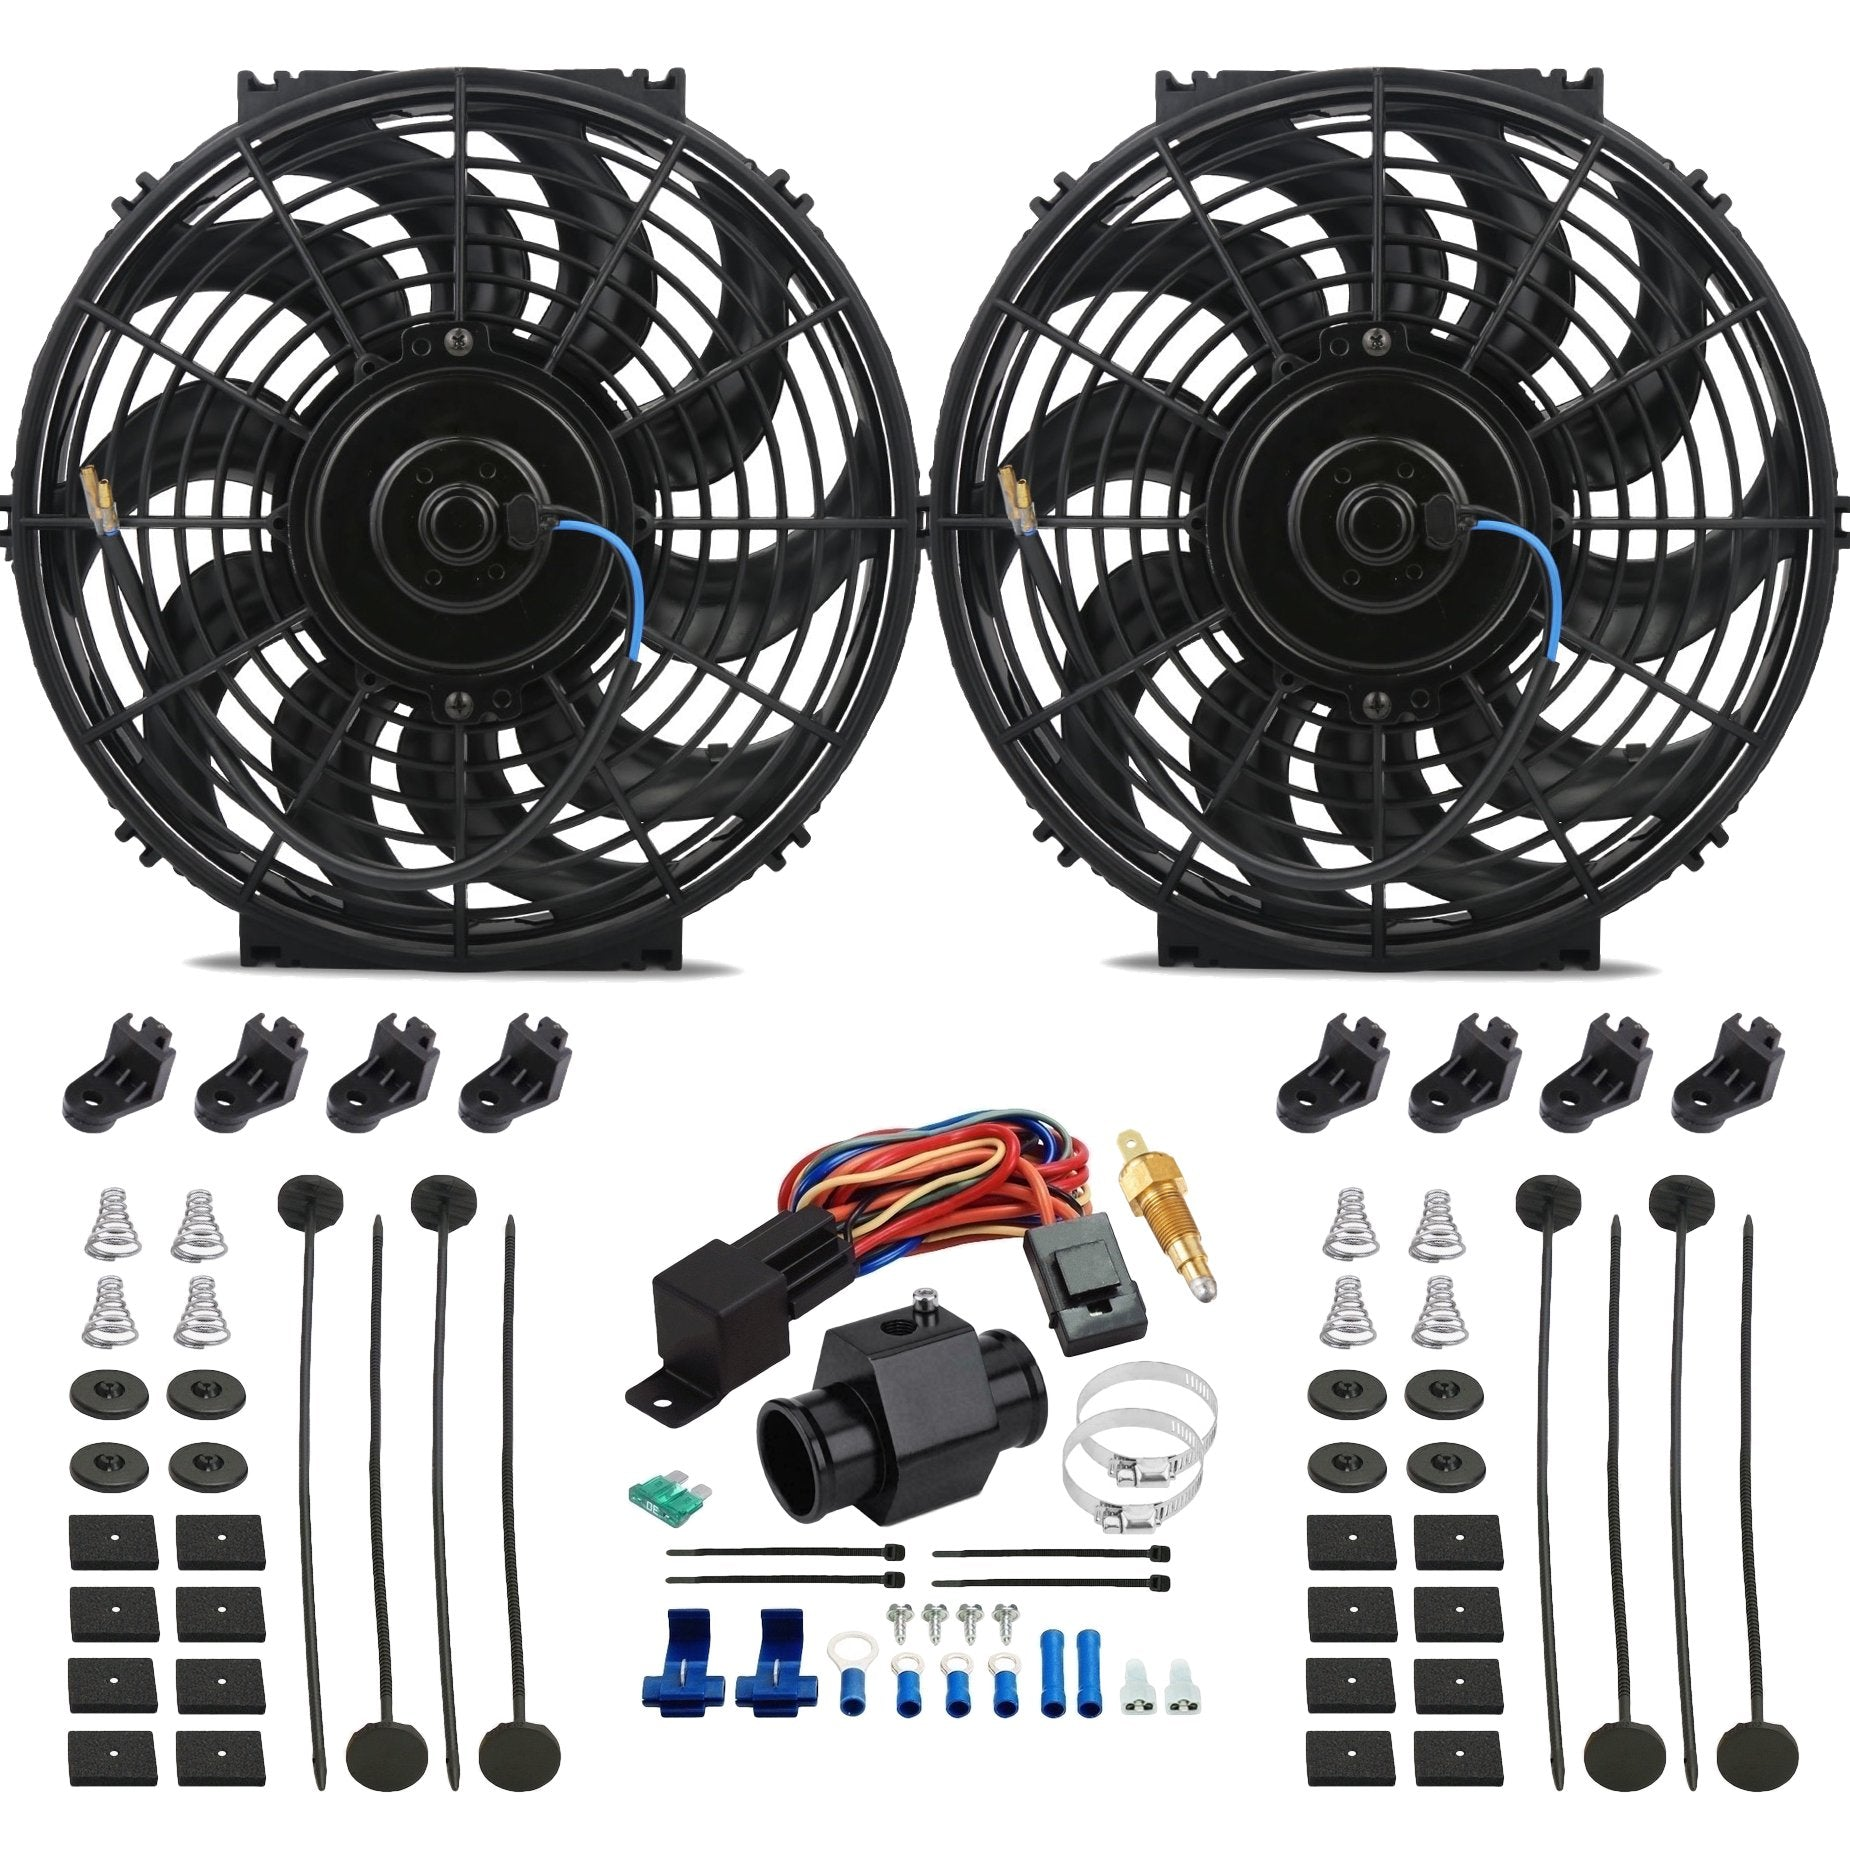 "Dual 12"" Inch 120w Electric Cooling Fans Radiator Hose In-Line Ground Thermostat Temp Switch Wiring Kit-Dual Electric Fans-American Volt-26mm-140'F On - 125'F Off-American Volt"